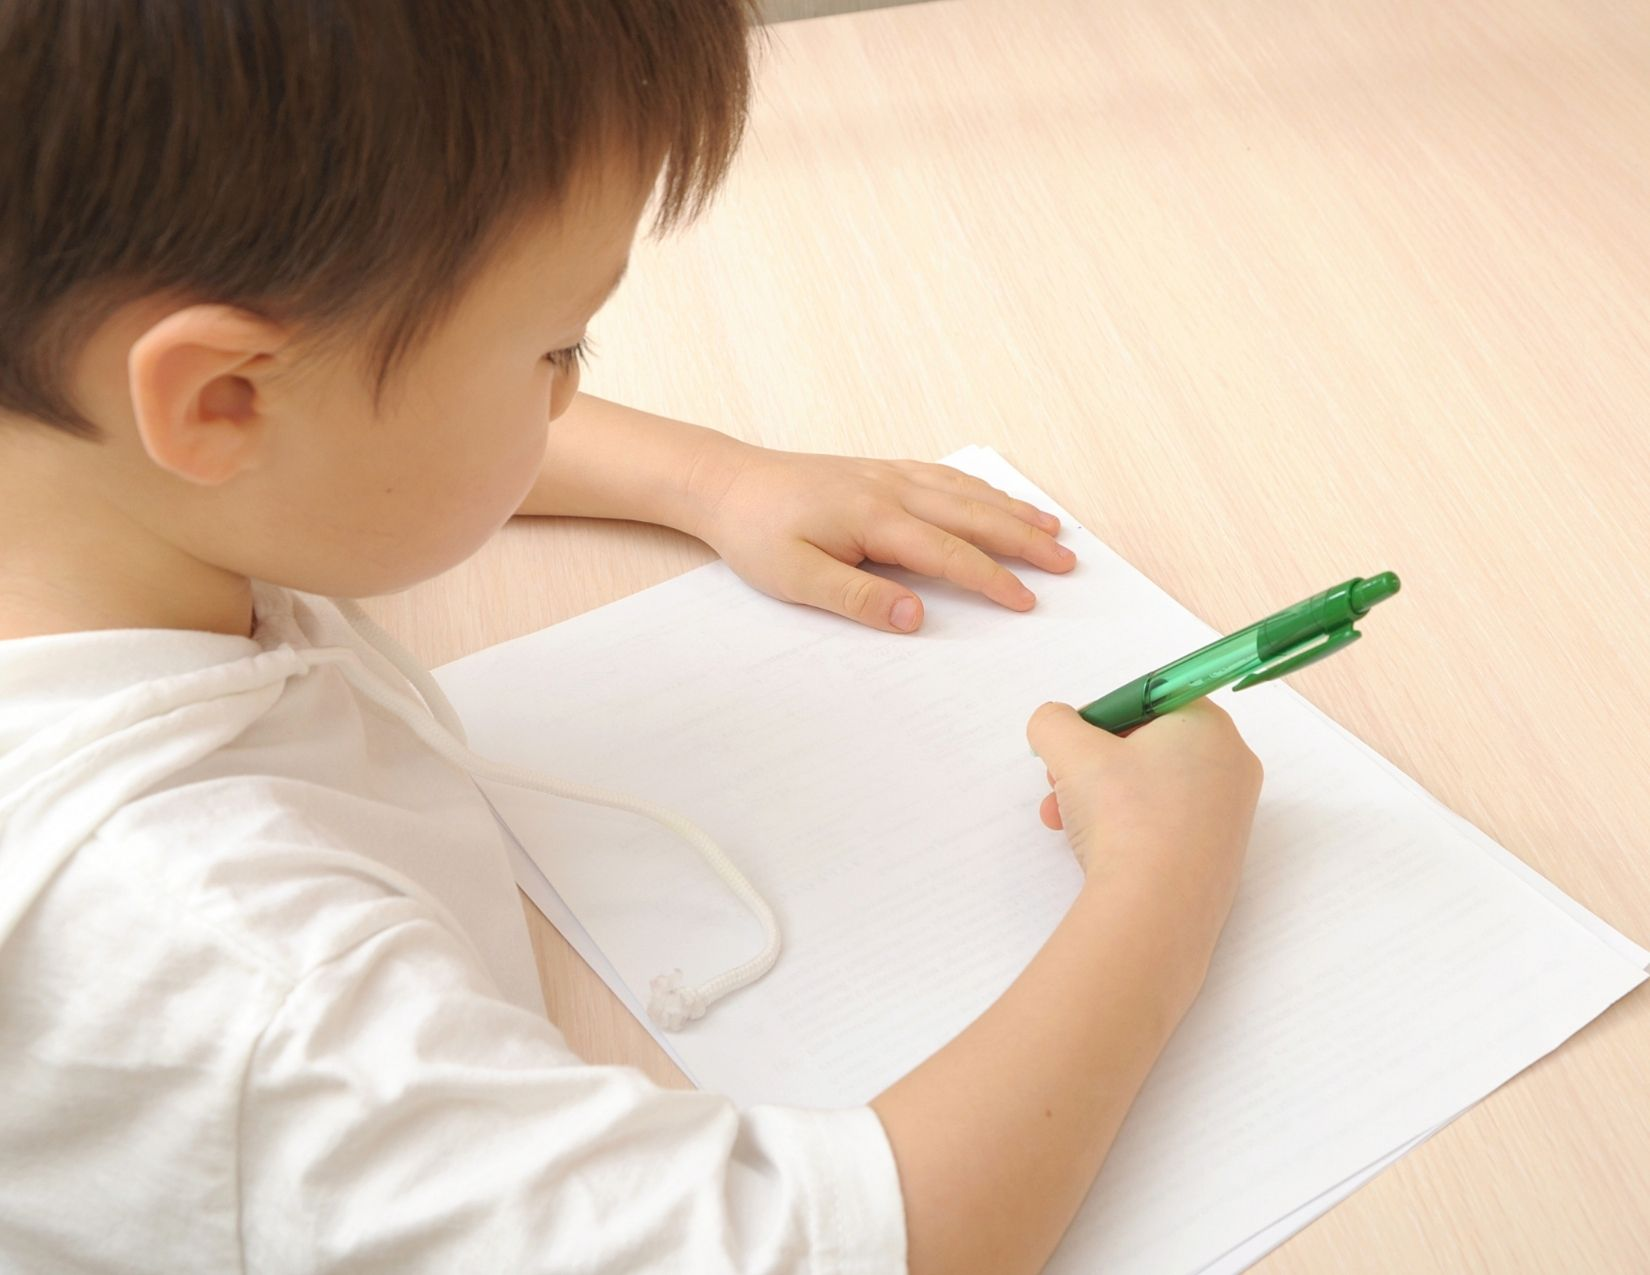 boy writing chore list